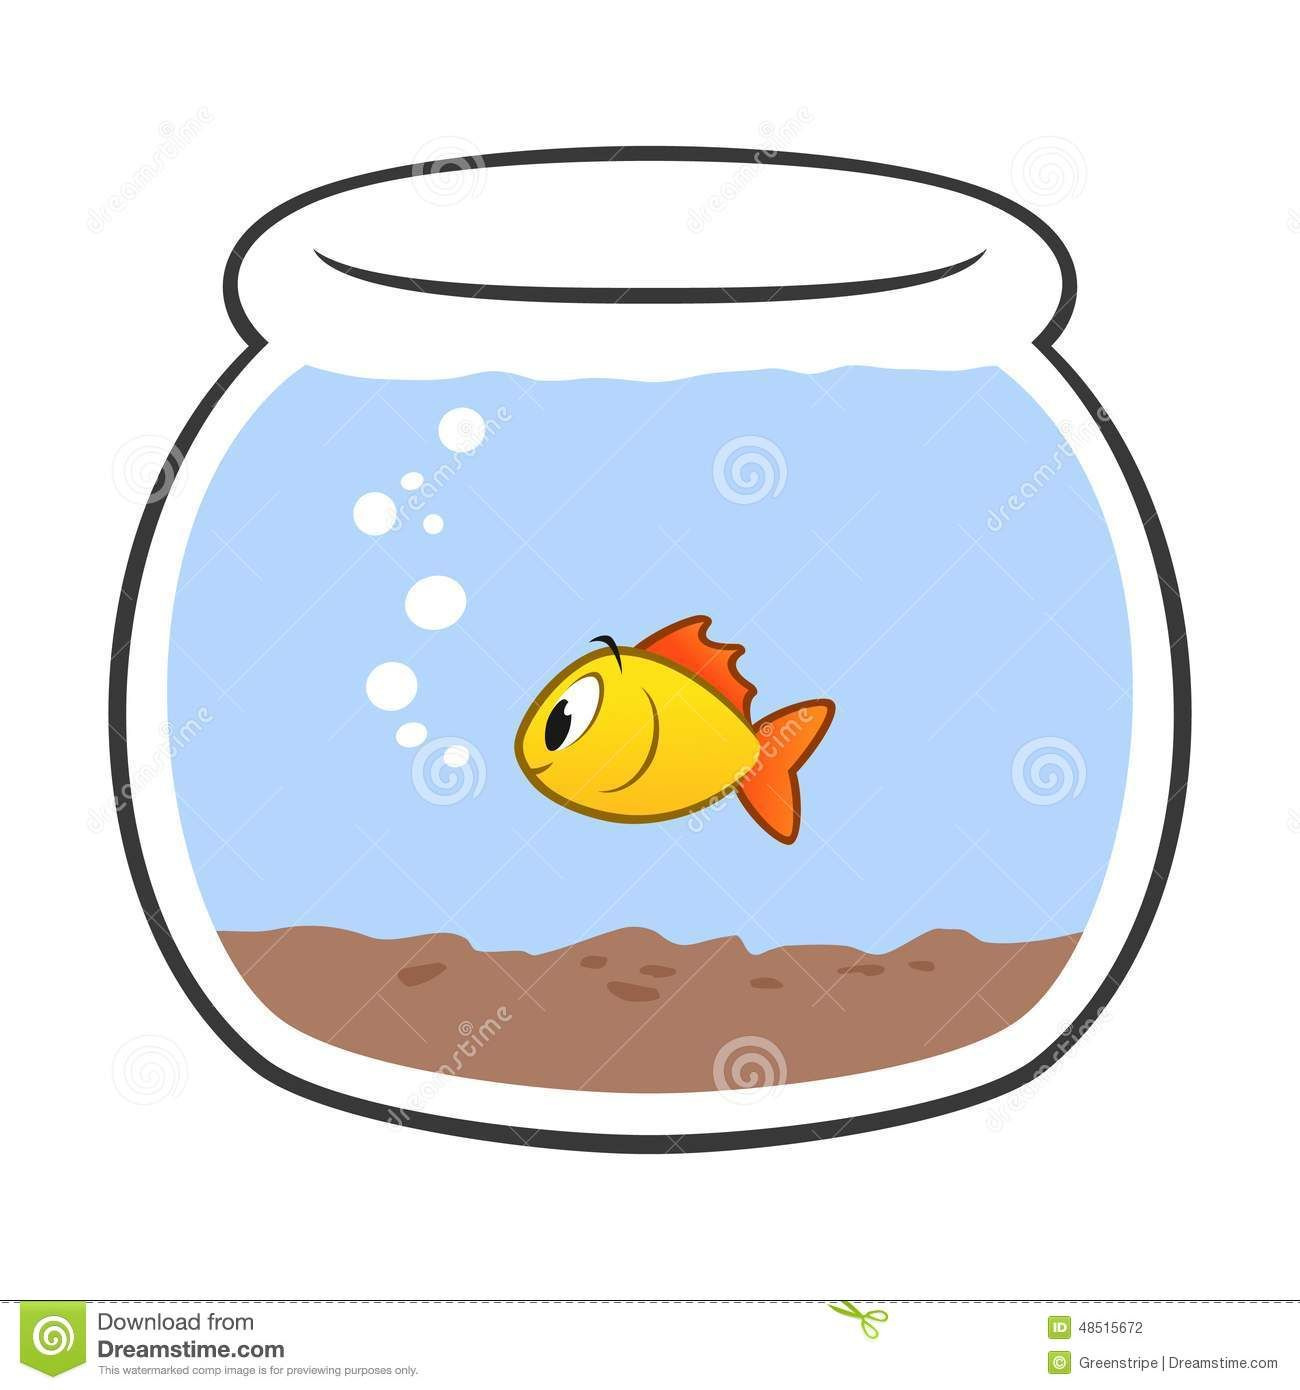 Fishbowl Clipart Goldfish Fish Bowl Clip Art Royalty Free